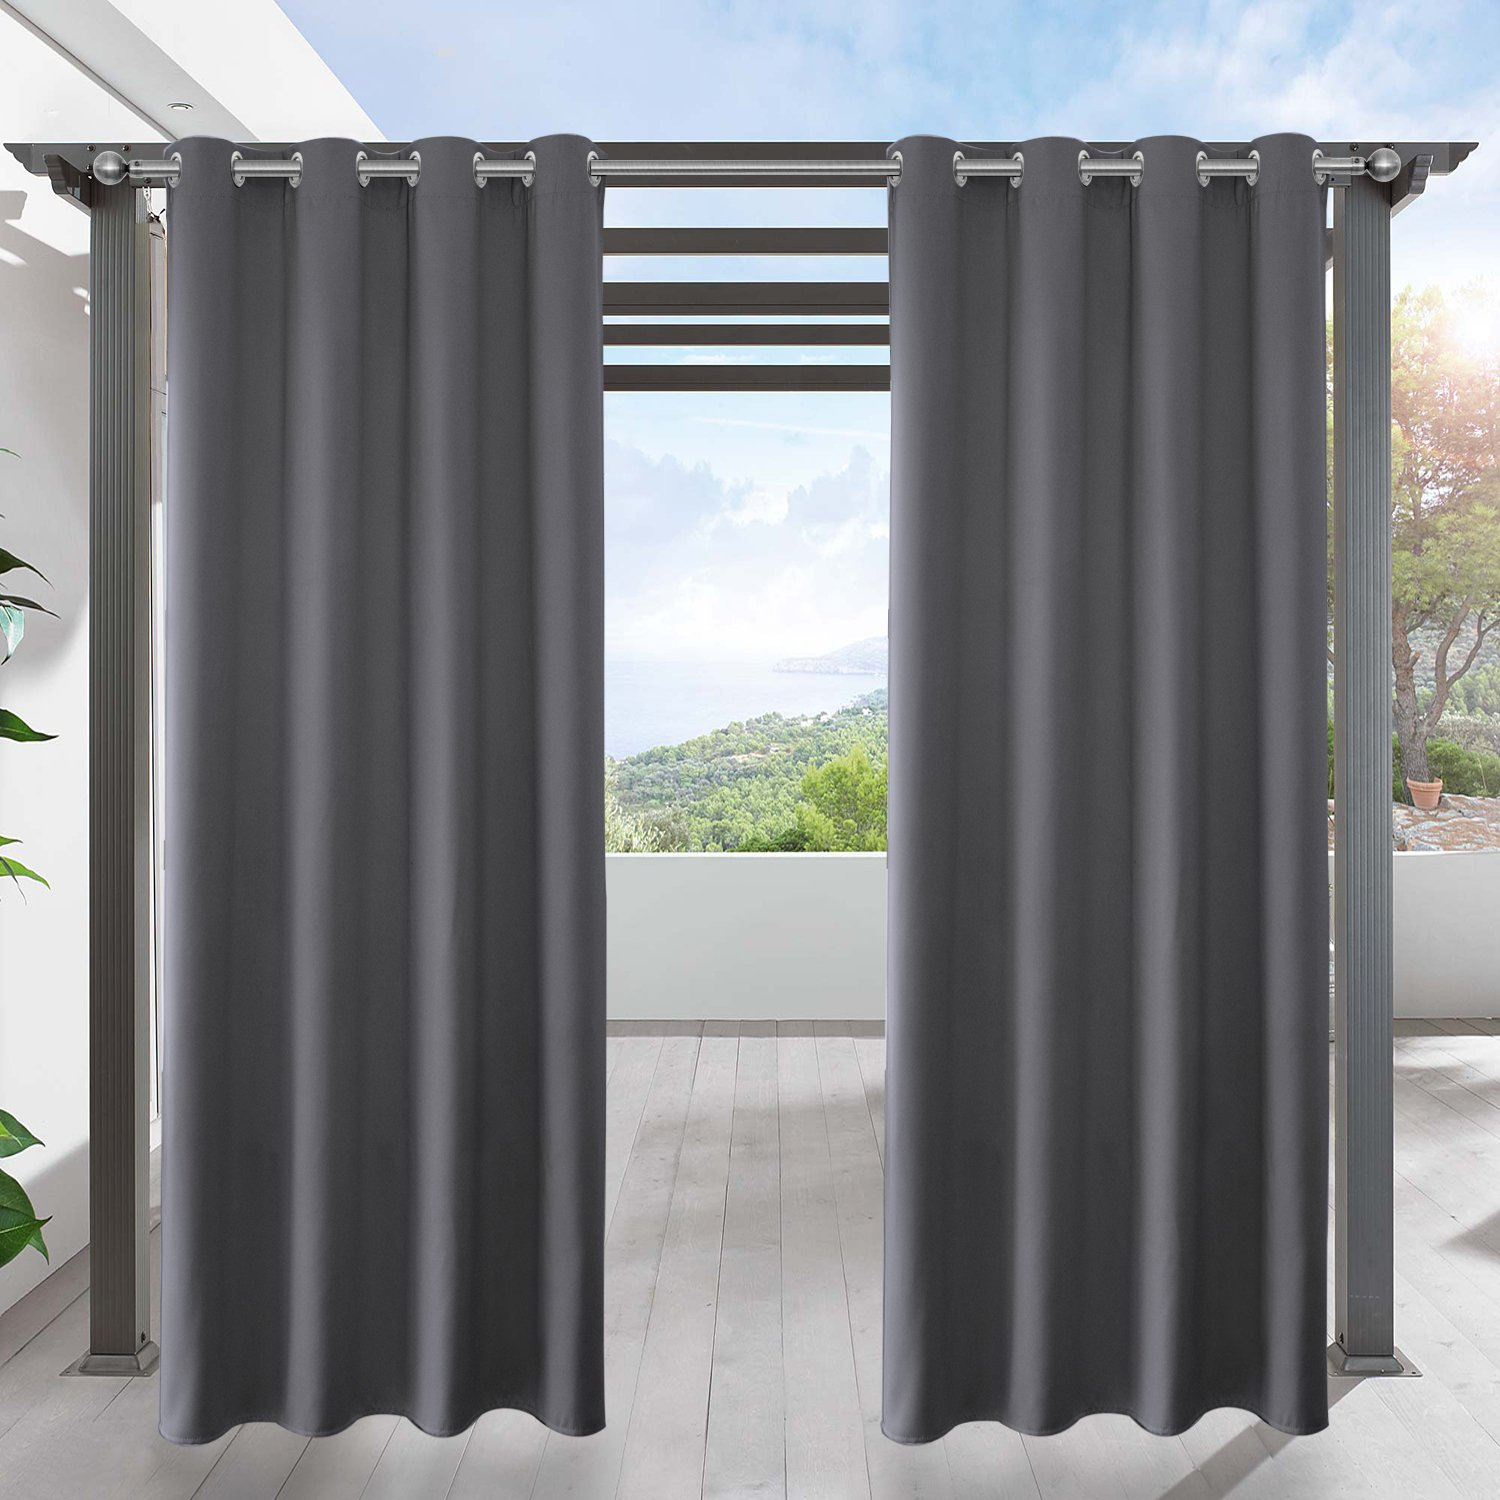 LIFONDER Grey Blackout Outdoor Curtains - Indoor/Outdoor Curtain Panels for Patio Privacy/Gazebo Pergola/Porch with Grommet Top, 52 Inches Wide by 95 Inches Long,(Set of 1)